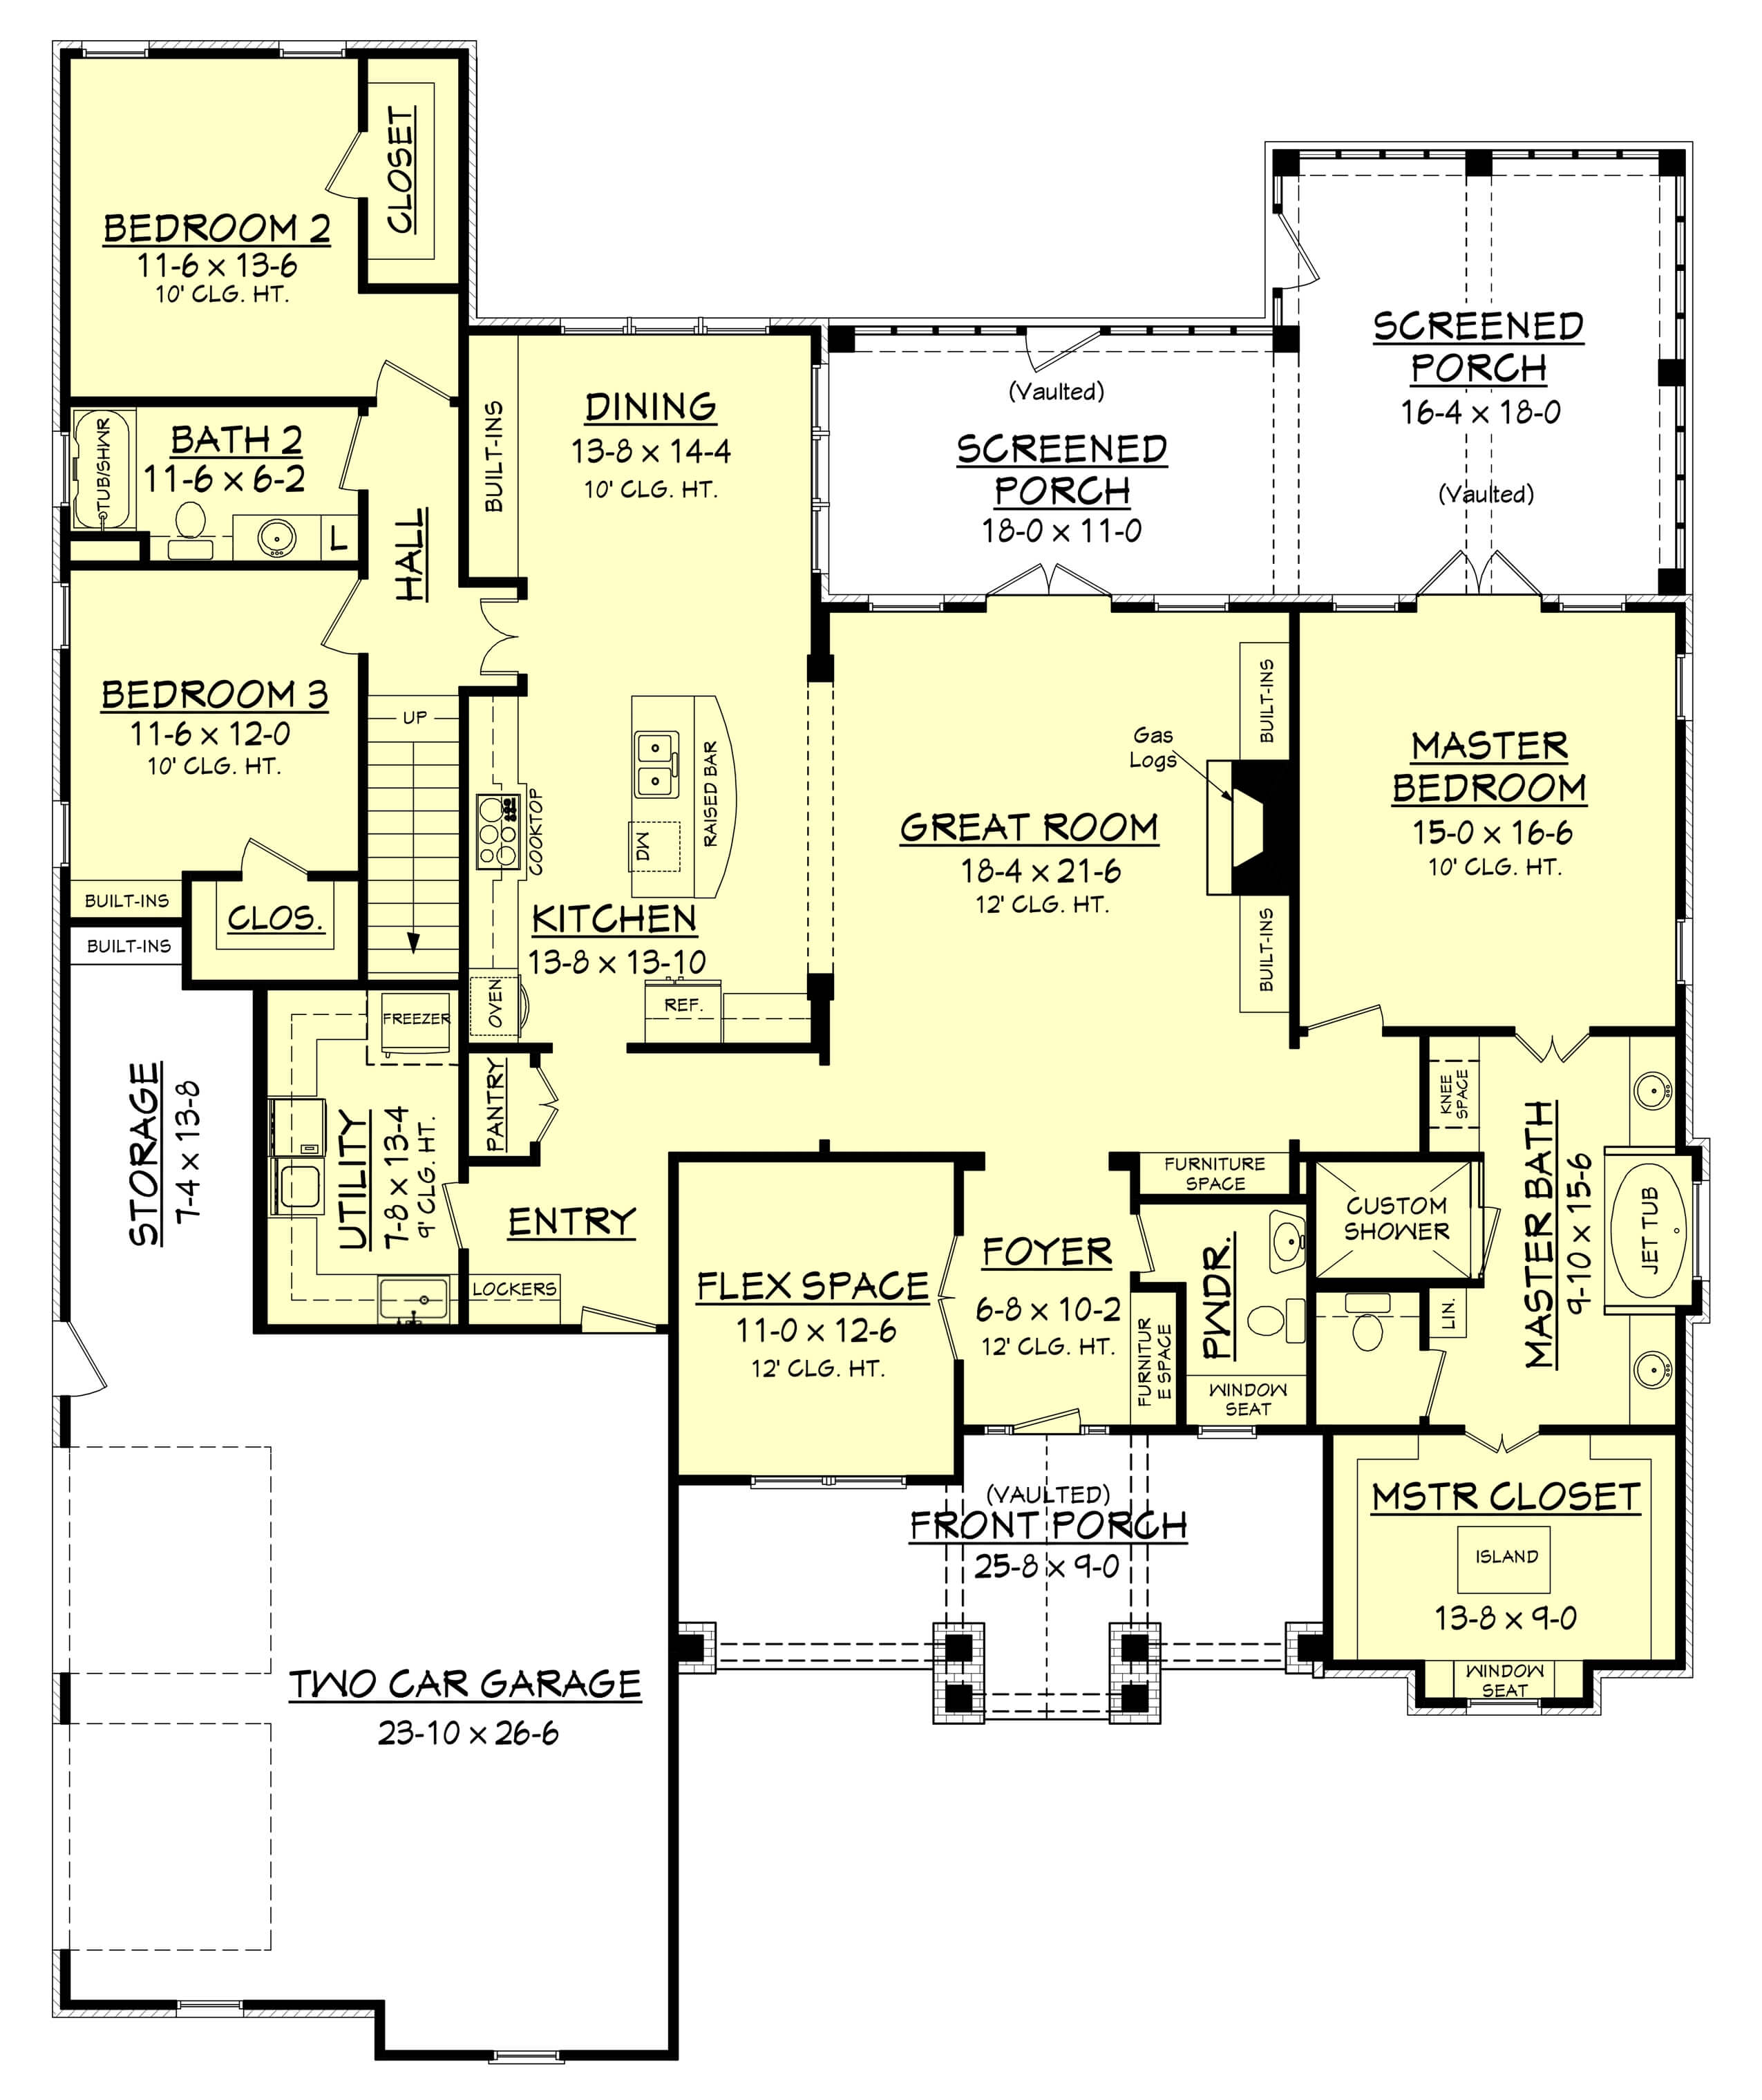 3 Bedrm, 2597 Sq Ft Craftsman House Plan With Photos #142-1168